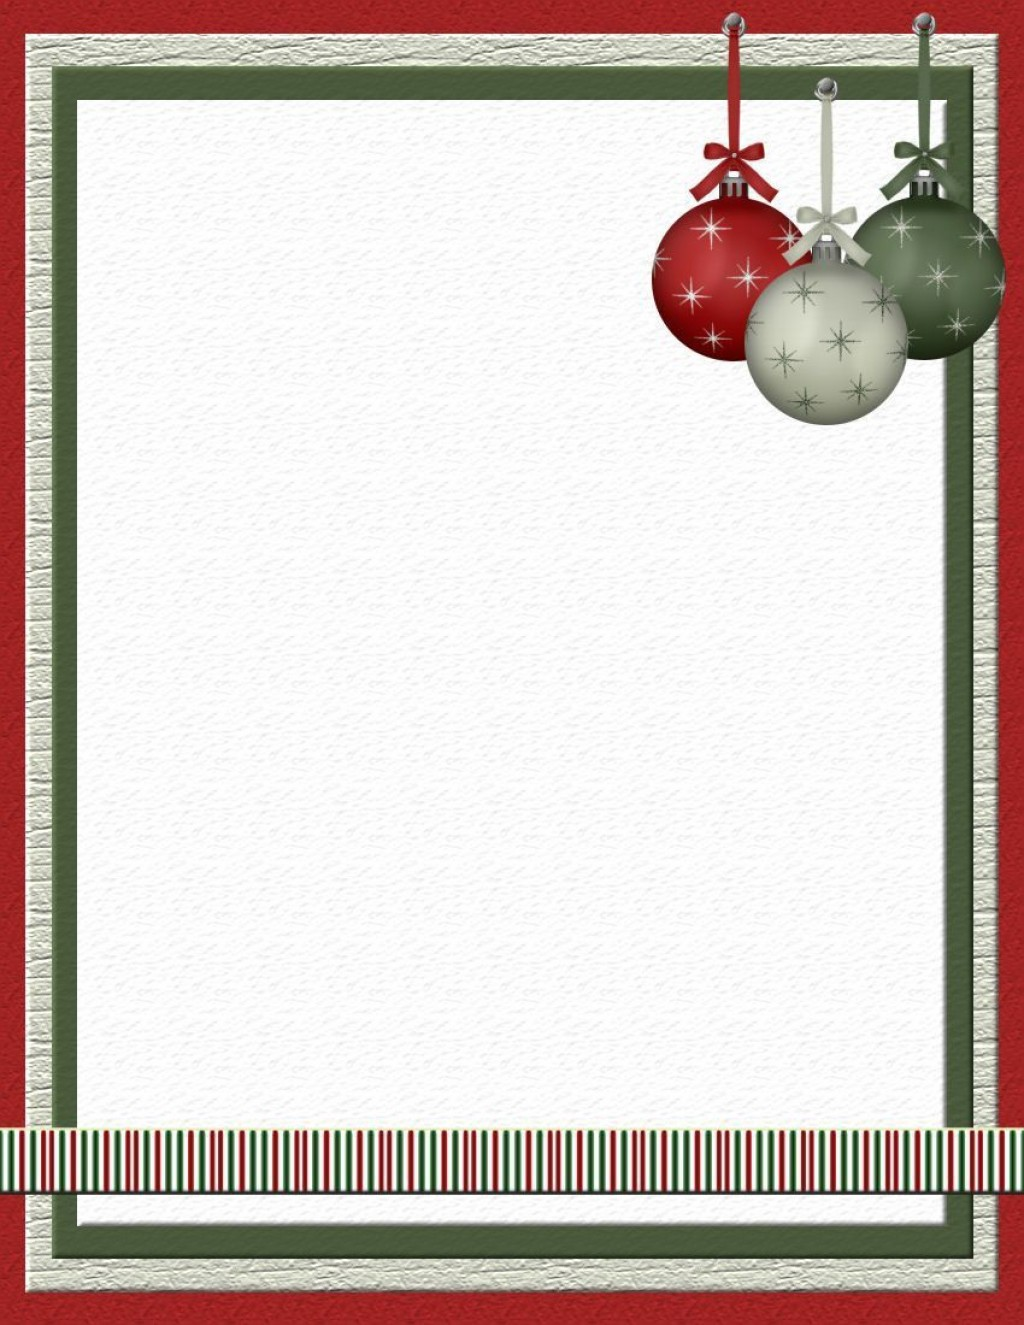 002 Breathtaking Christma Template Free Download Concept  Word Editable Card TreeLarge